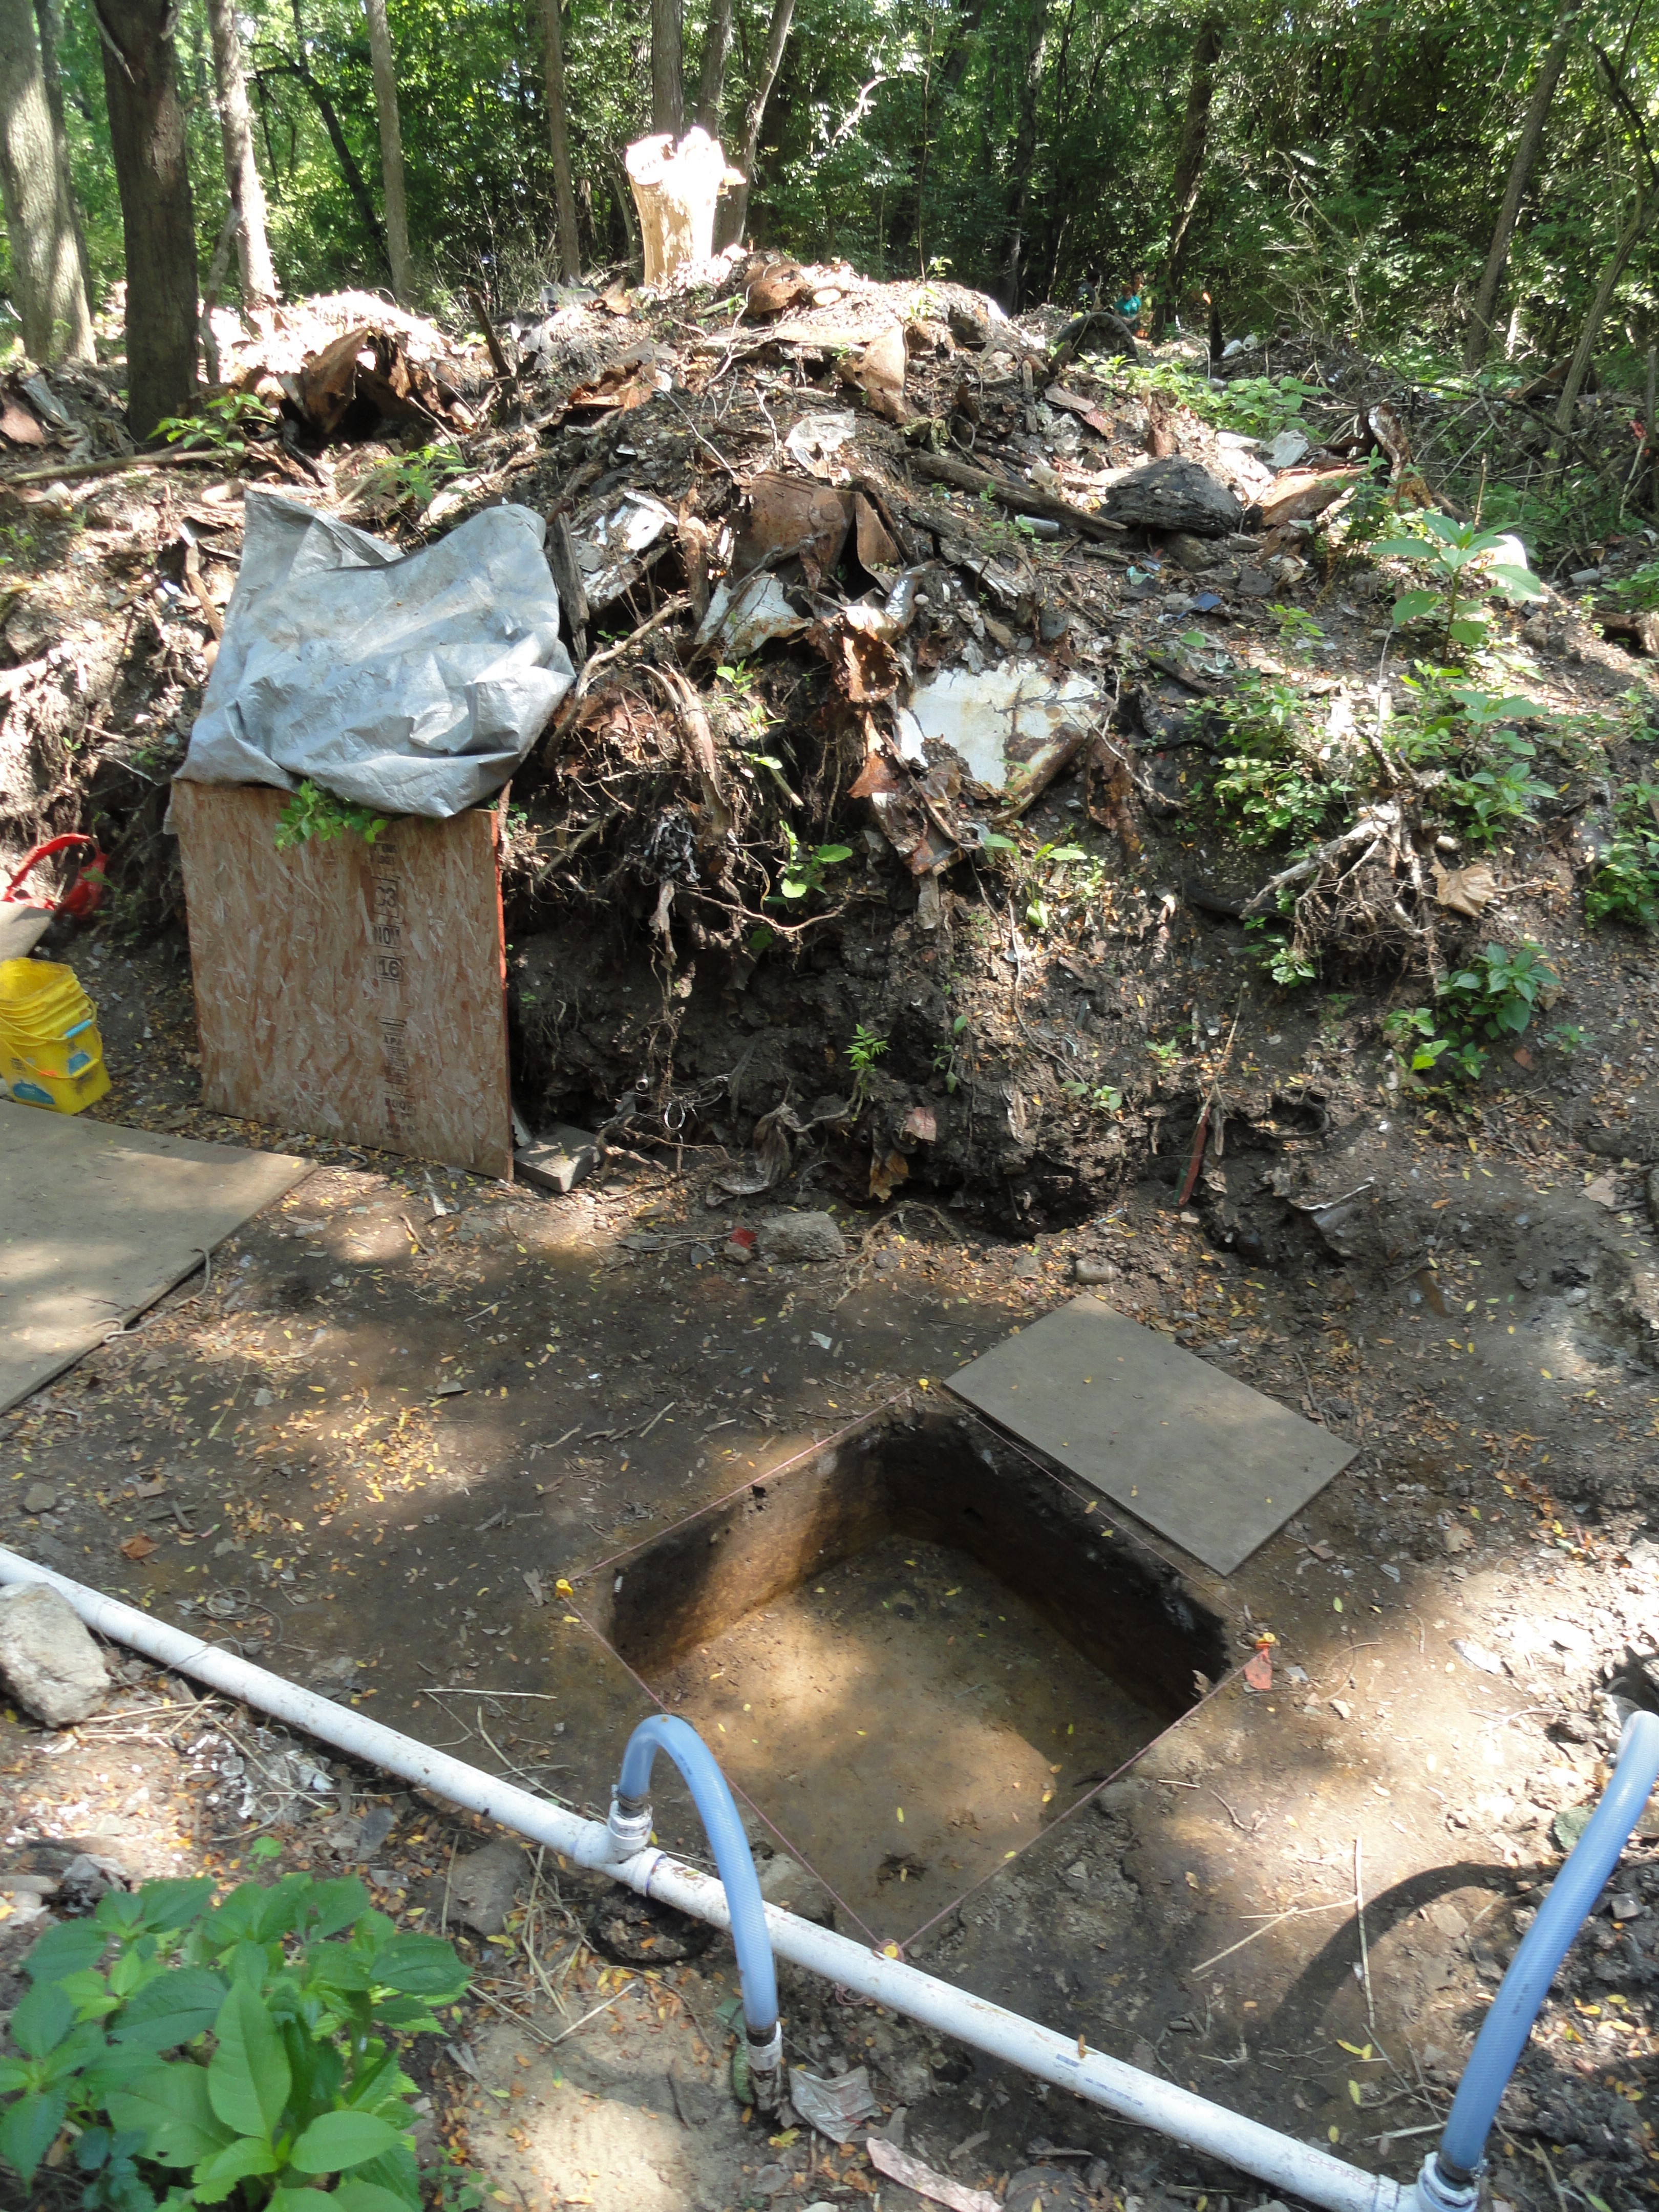 Image of trench two at Fort St. Joseph. Glass bottles, broken washing machines and other items tower above a pit dug out by students and instructors. A water removal system is in place to keep the area free of standing water during the digging season.